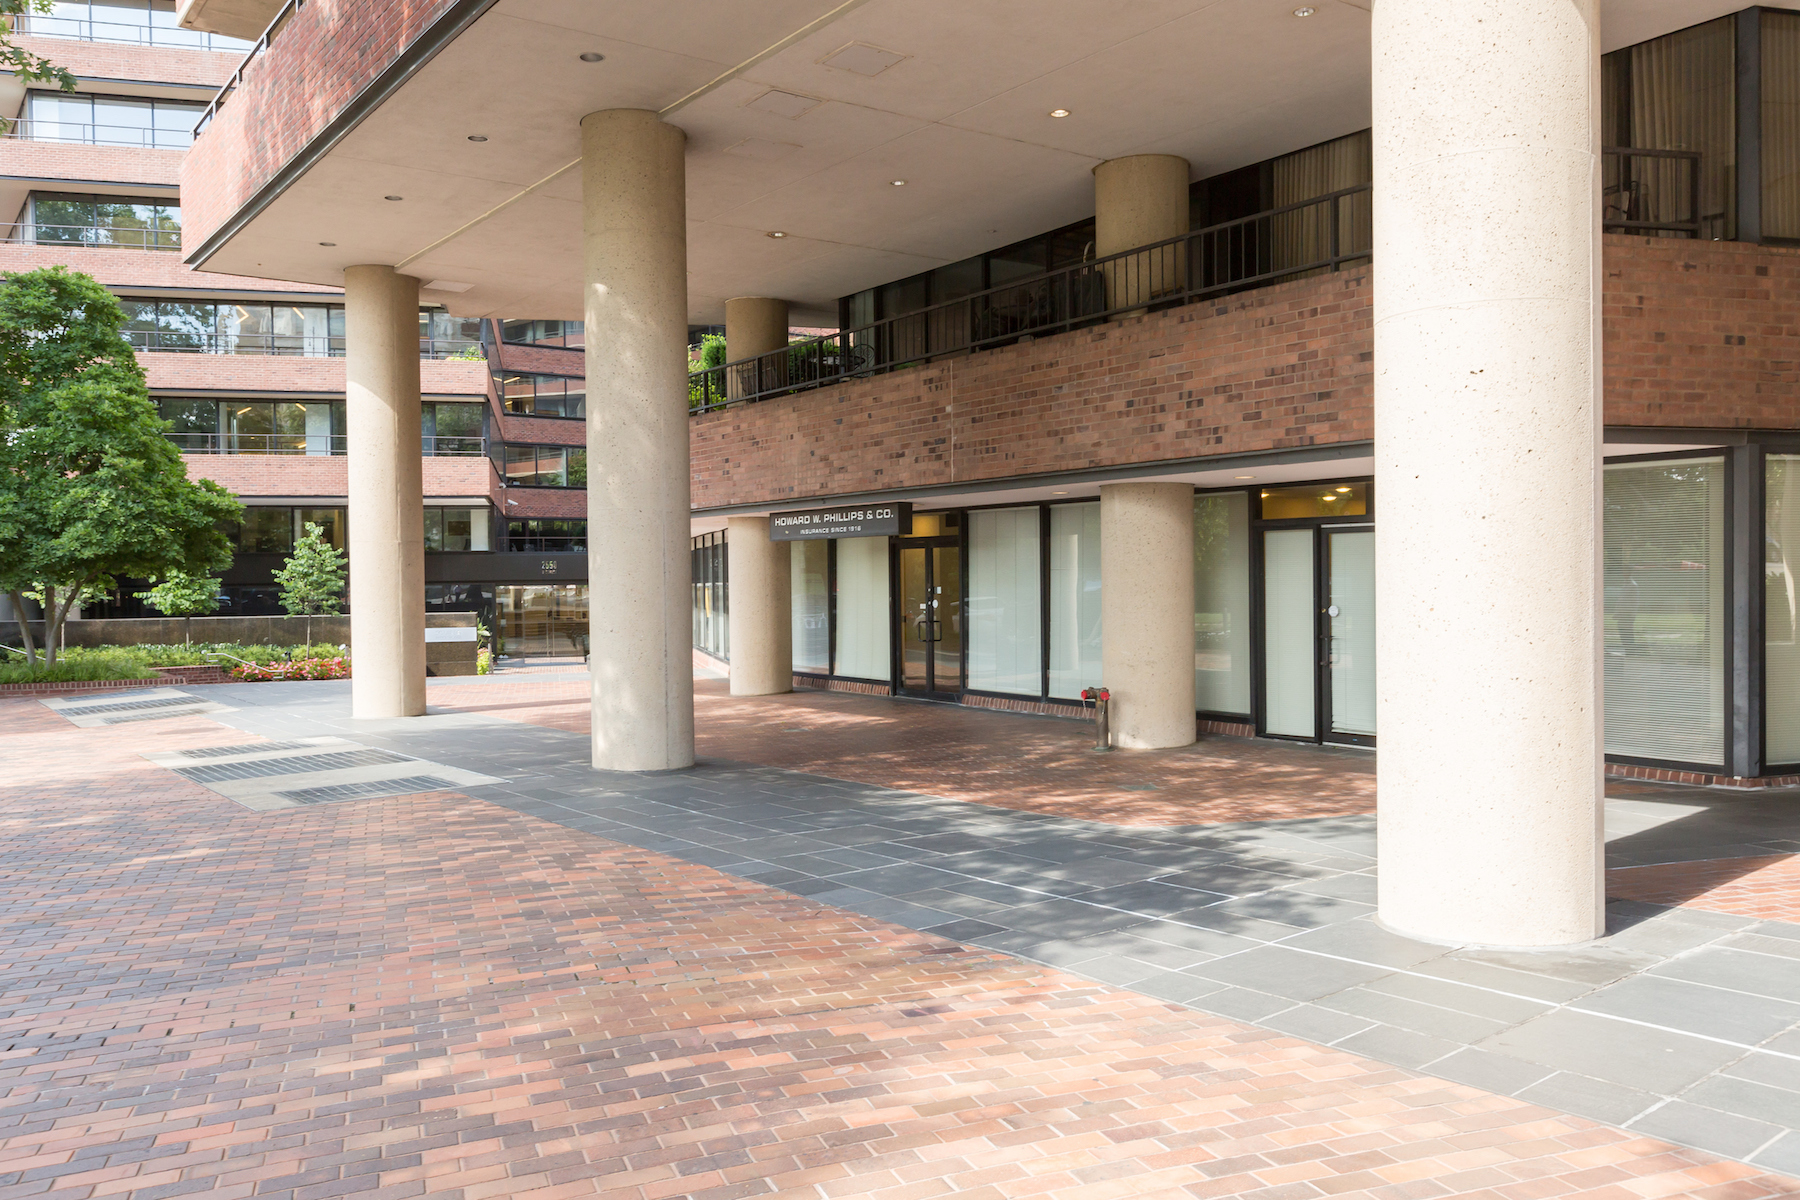 Additional photo for property listing at 2555 Pennsylvania Ave Nw #1c 2555 Pennsylvania Ave Nw #1c Washington, District Of Columbia 20037 United States